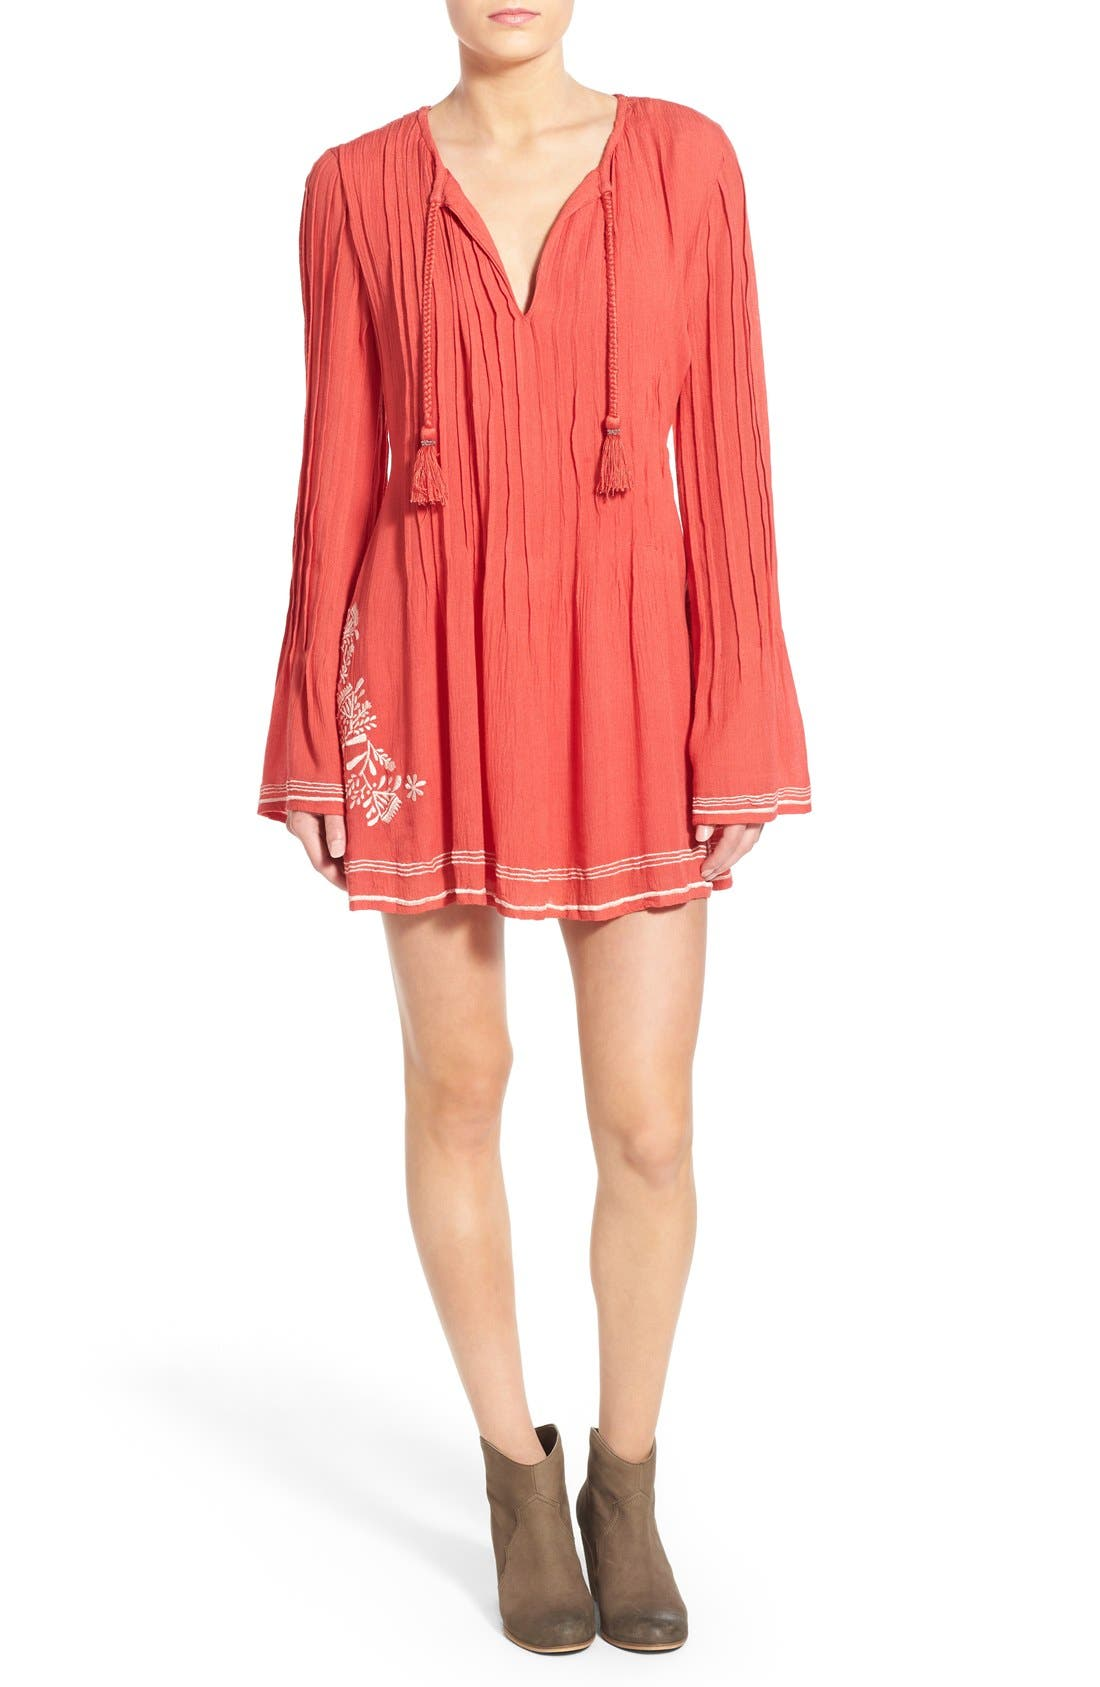 Alternate Image 1 Selected - Tularosa 'Audrey' Embroidered Tunic Dress